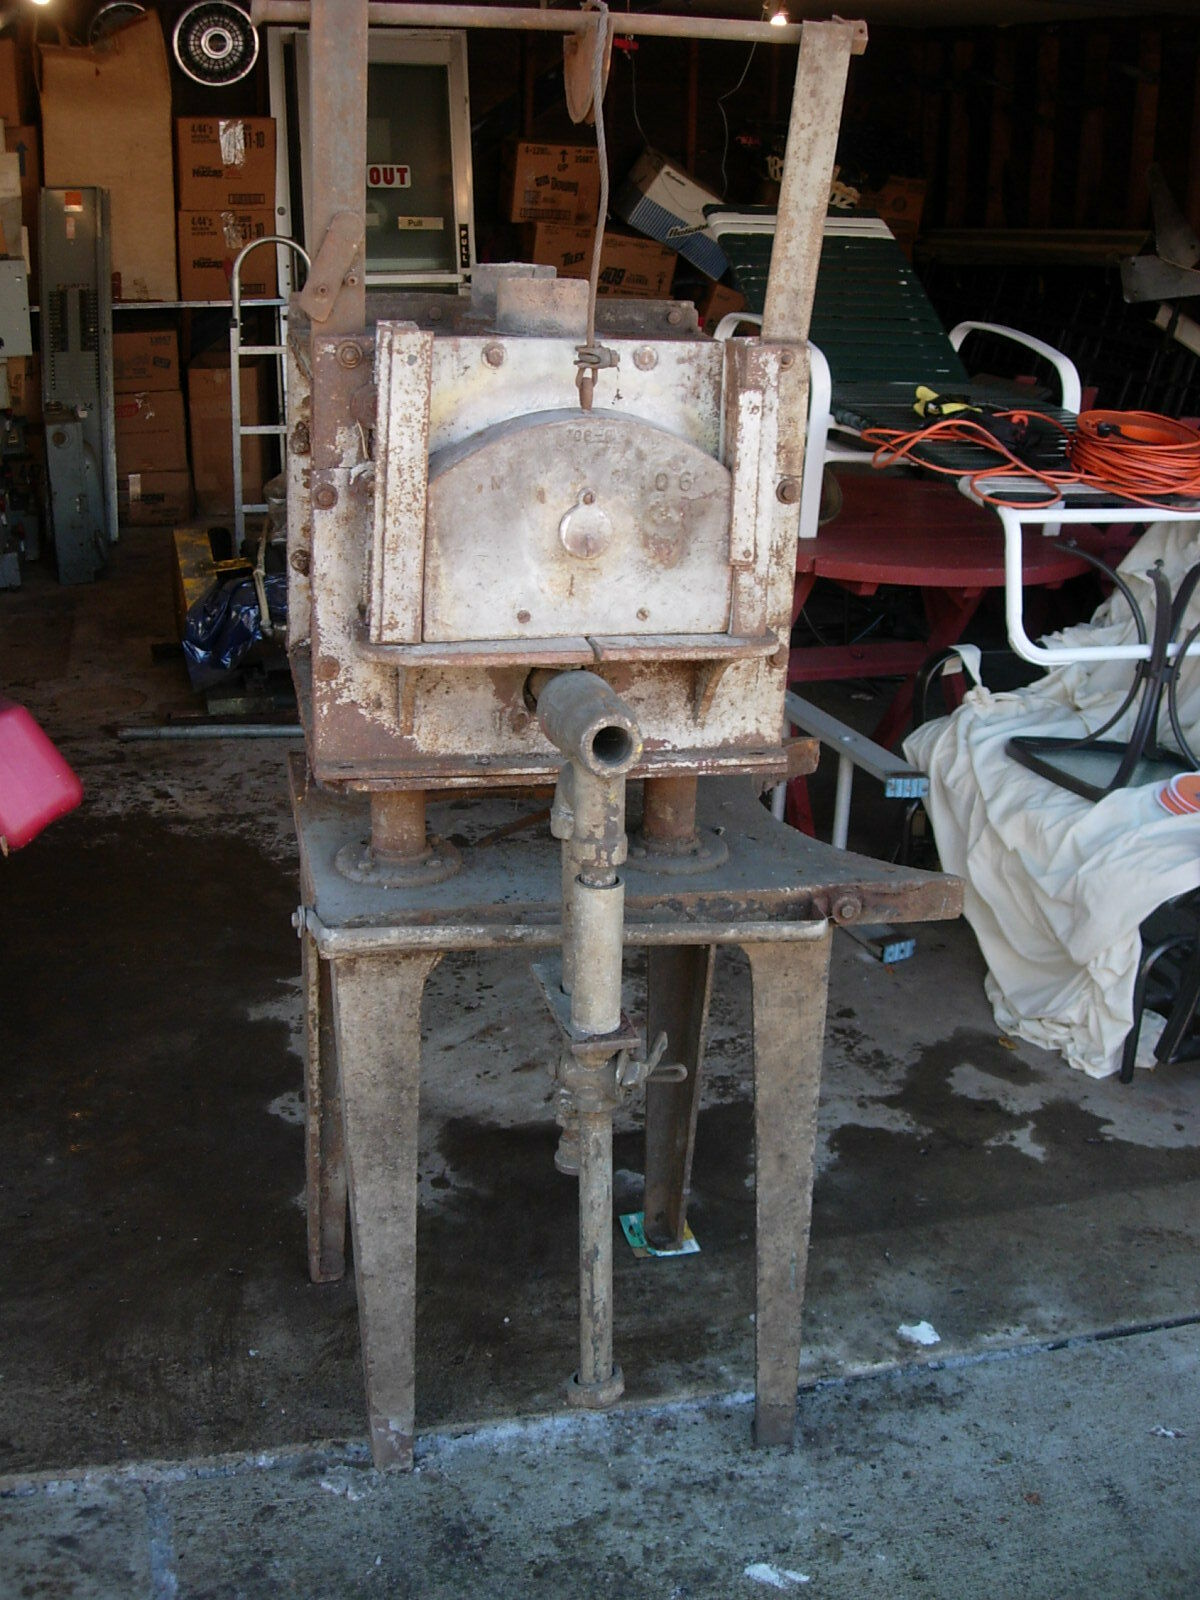 Vintage Heat Treat Furnace From A Tool And Die Shop (Used) - Natural Gas